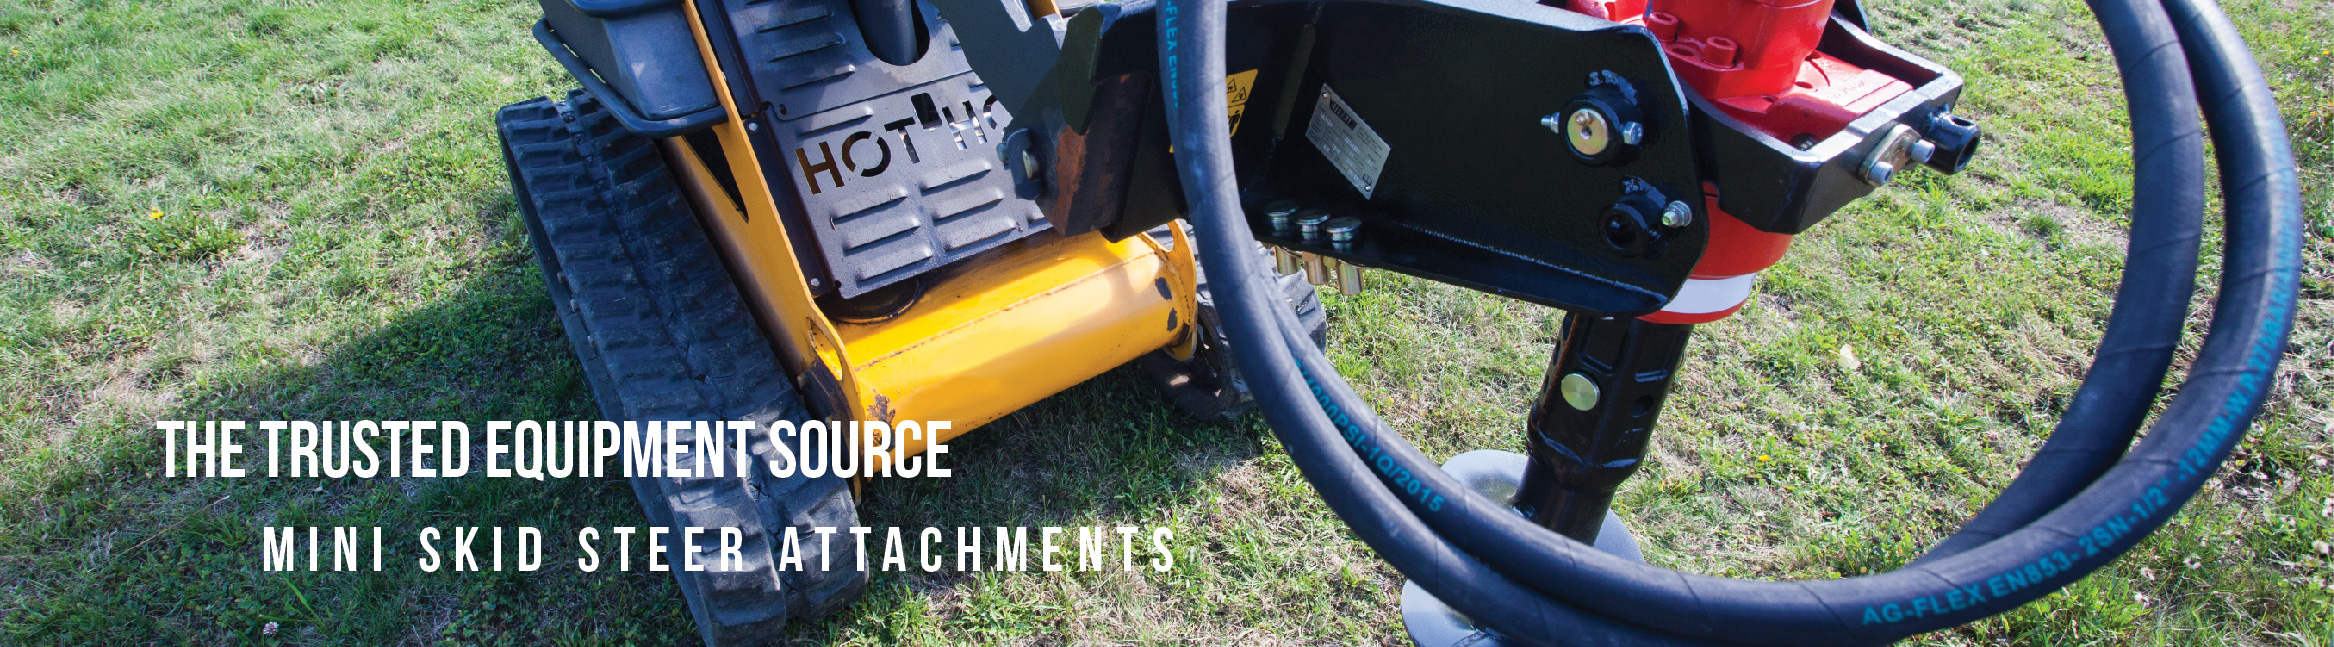 Shop Mini Skid Steer Attachments online at Skid Steer Solutions. We carry a huge selection of rugged and efficient tools for your mini loader.